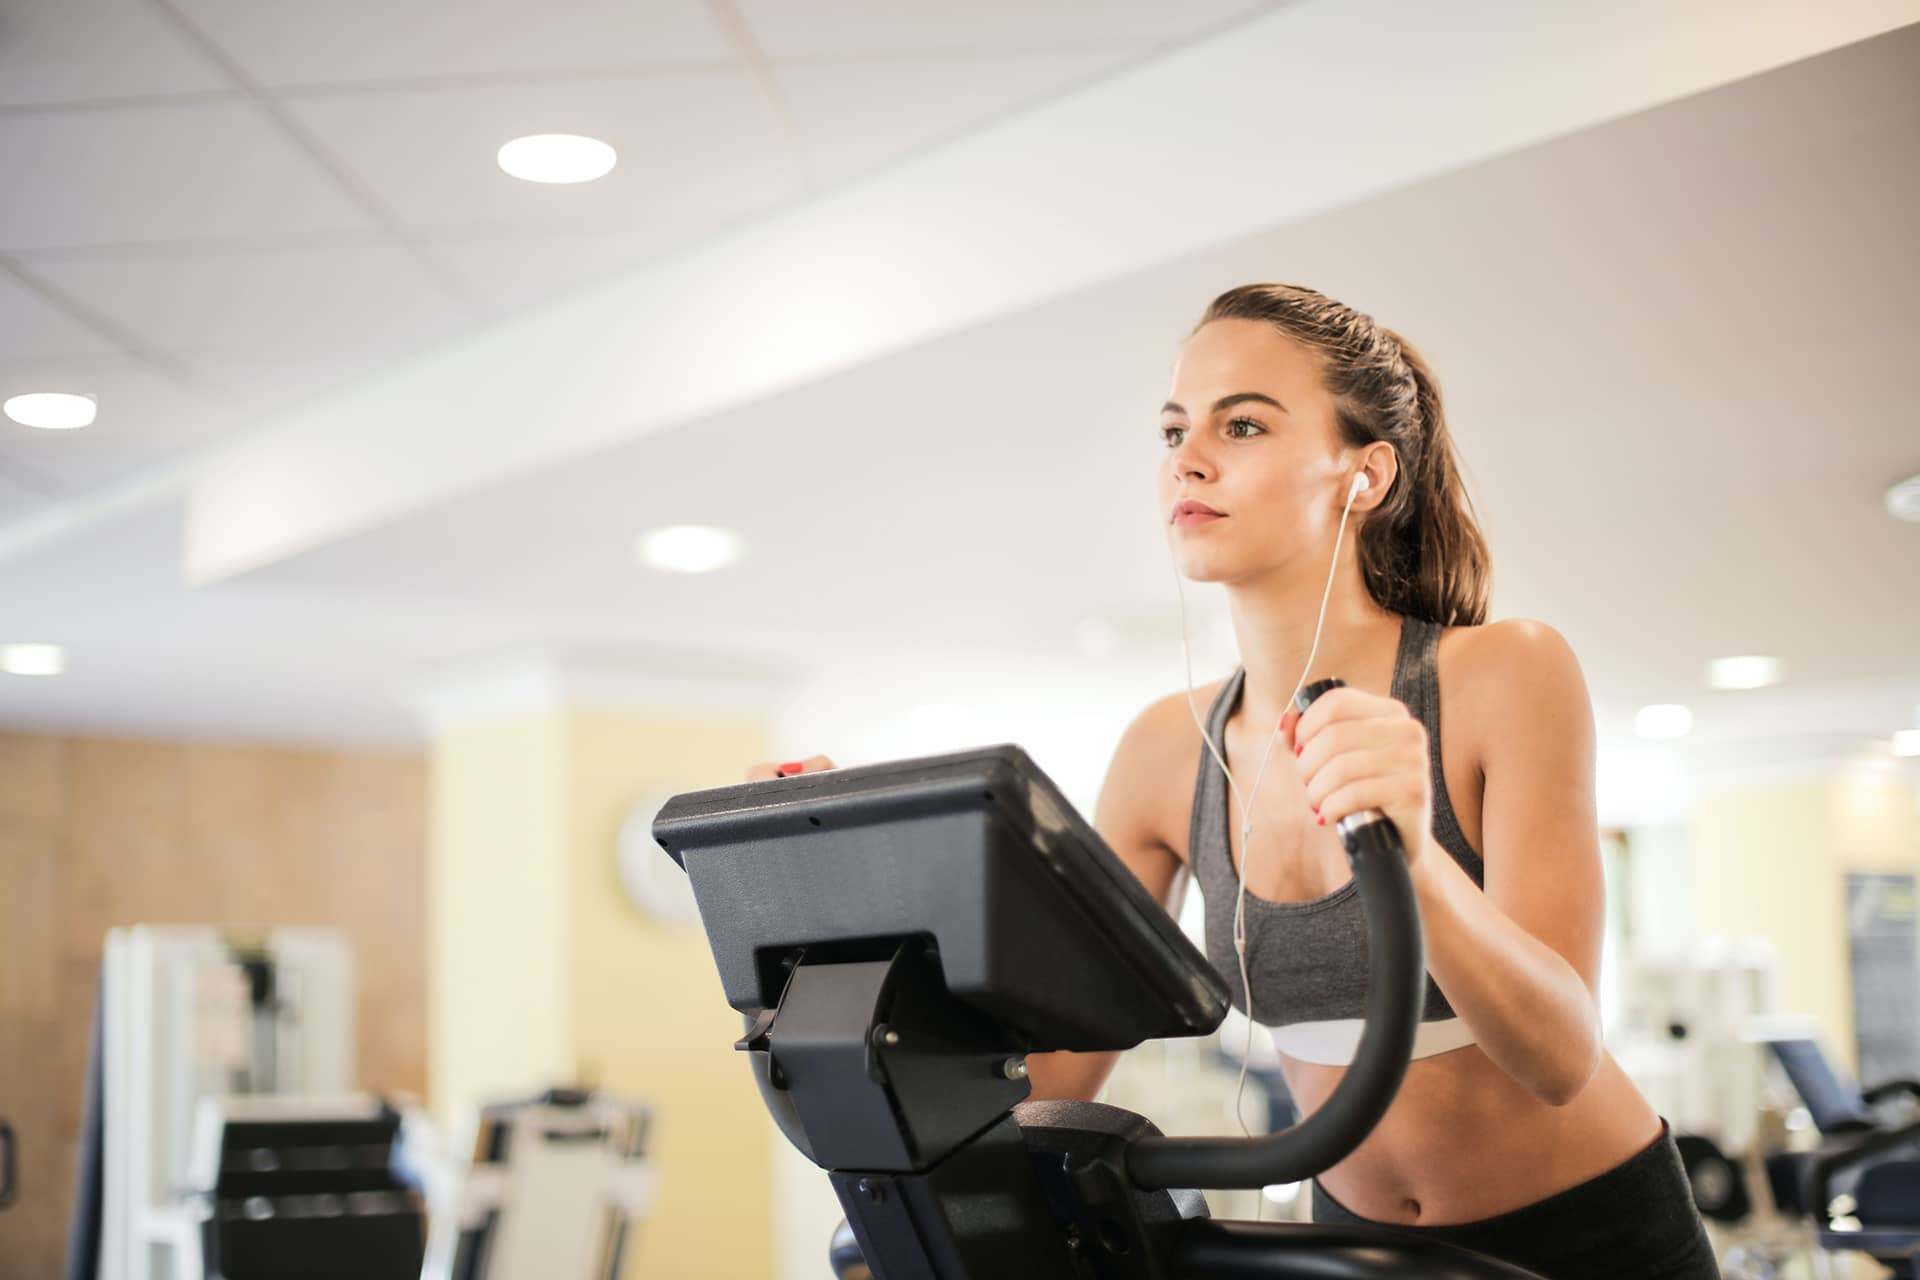 Working out with cannabis: How medical cannabis affects exercise